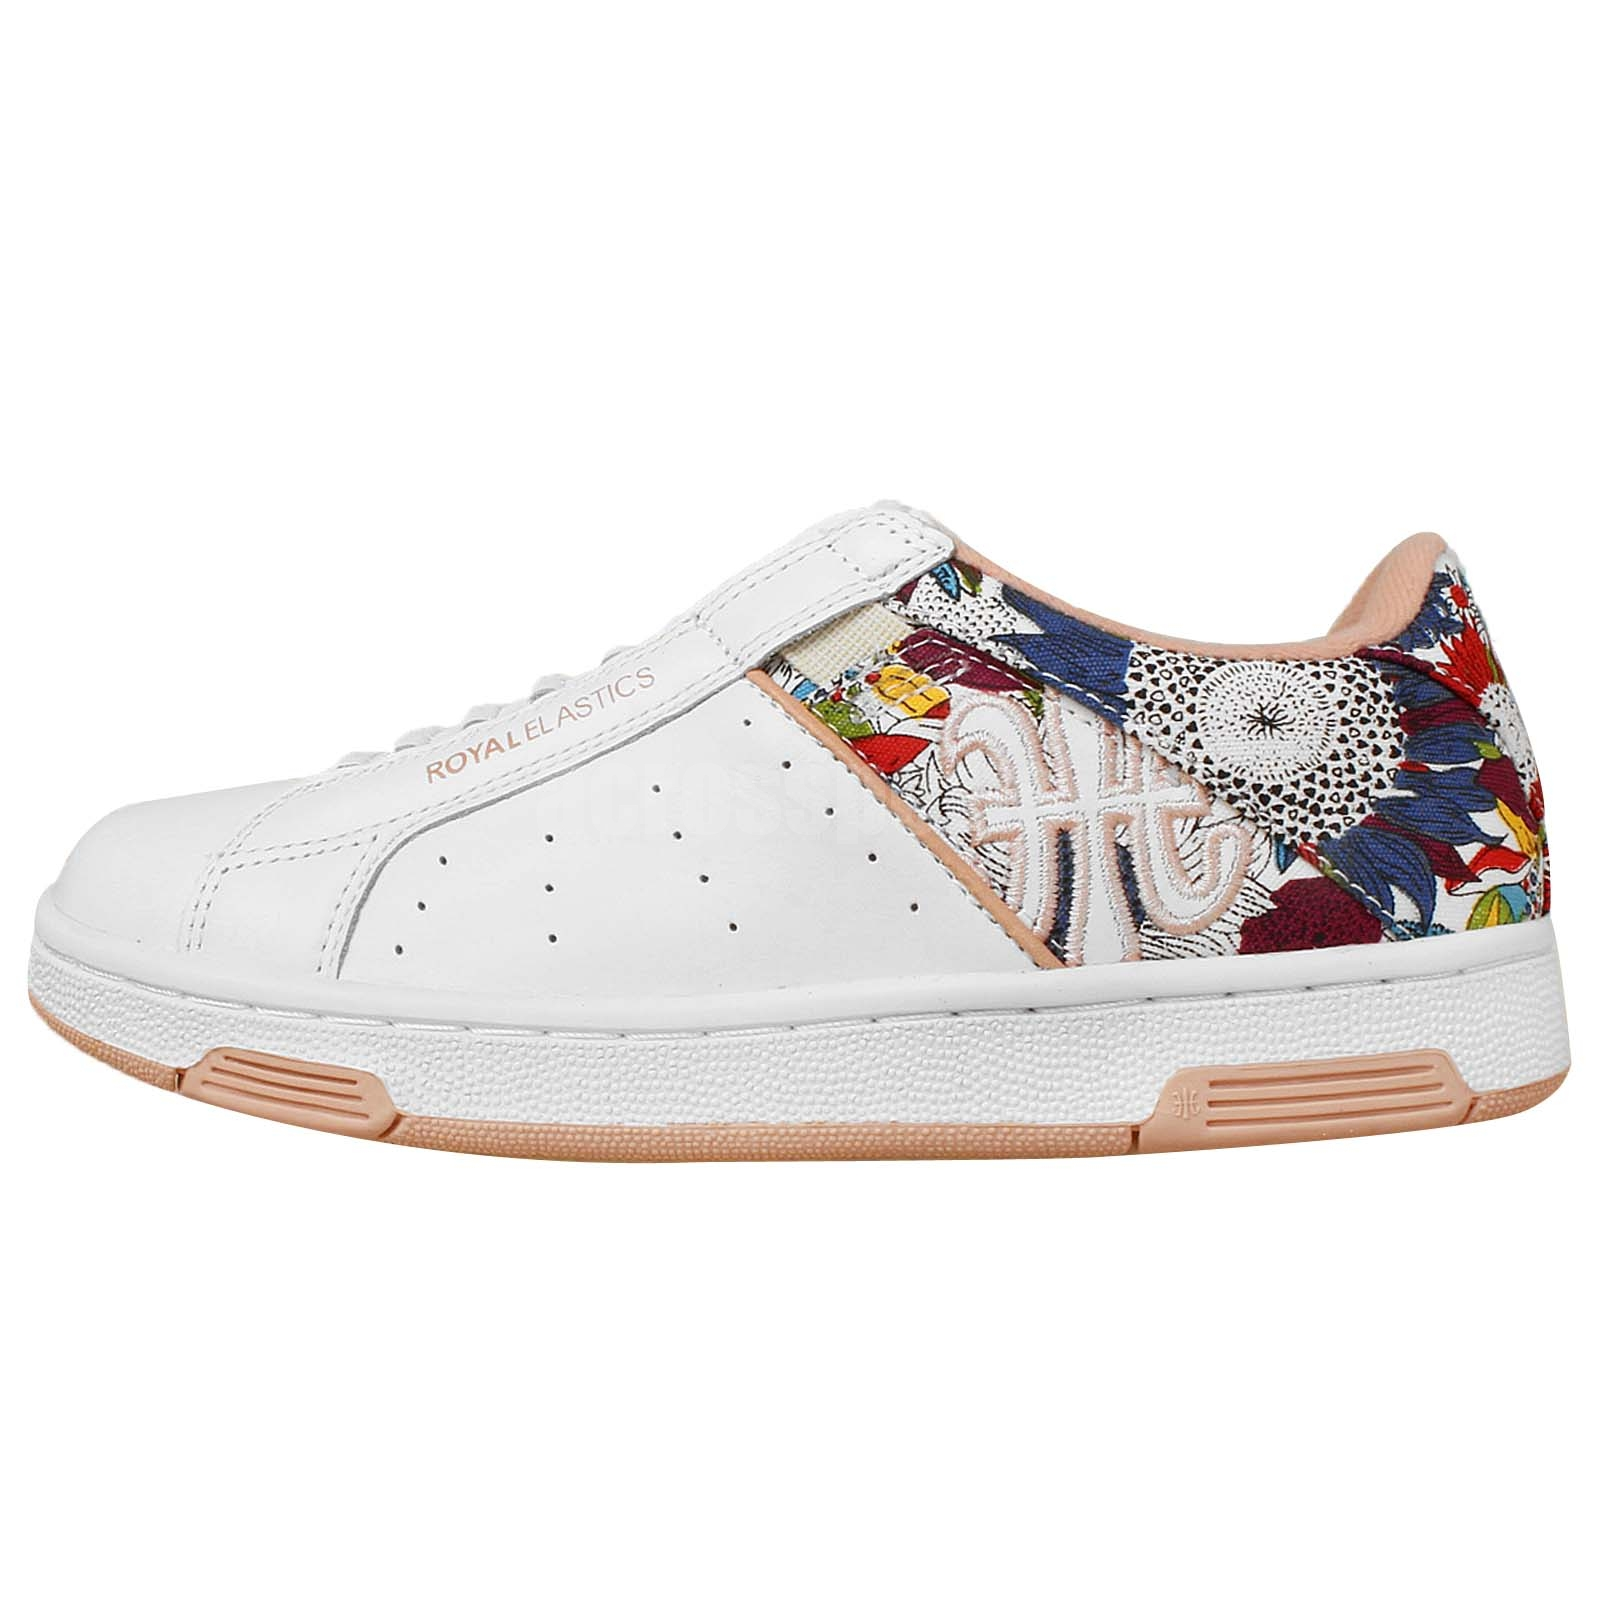 royal elastics icon white floral womens new casual shoes